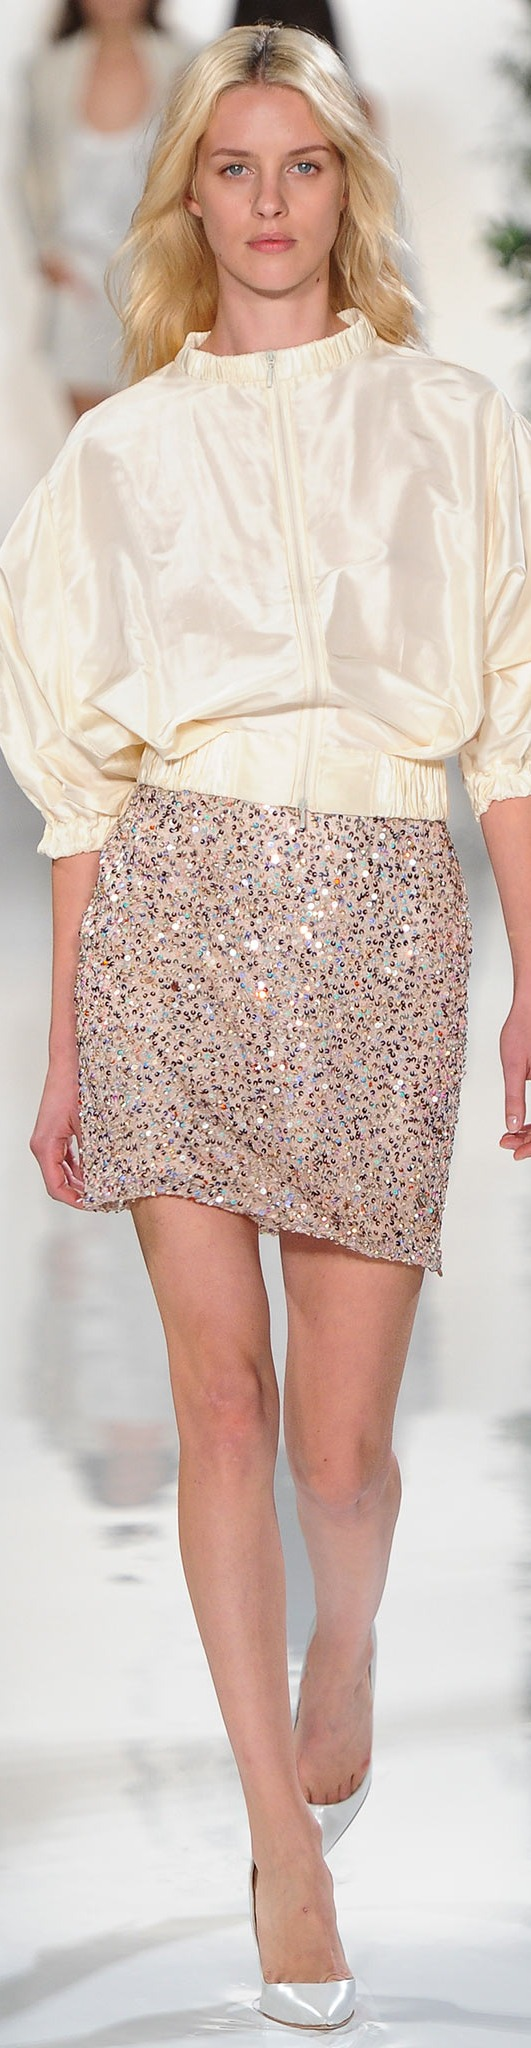 Valentin Yudashkin Collection Spring 2015 | The House of Beccaria~